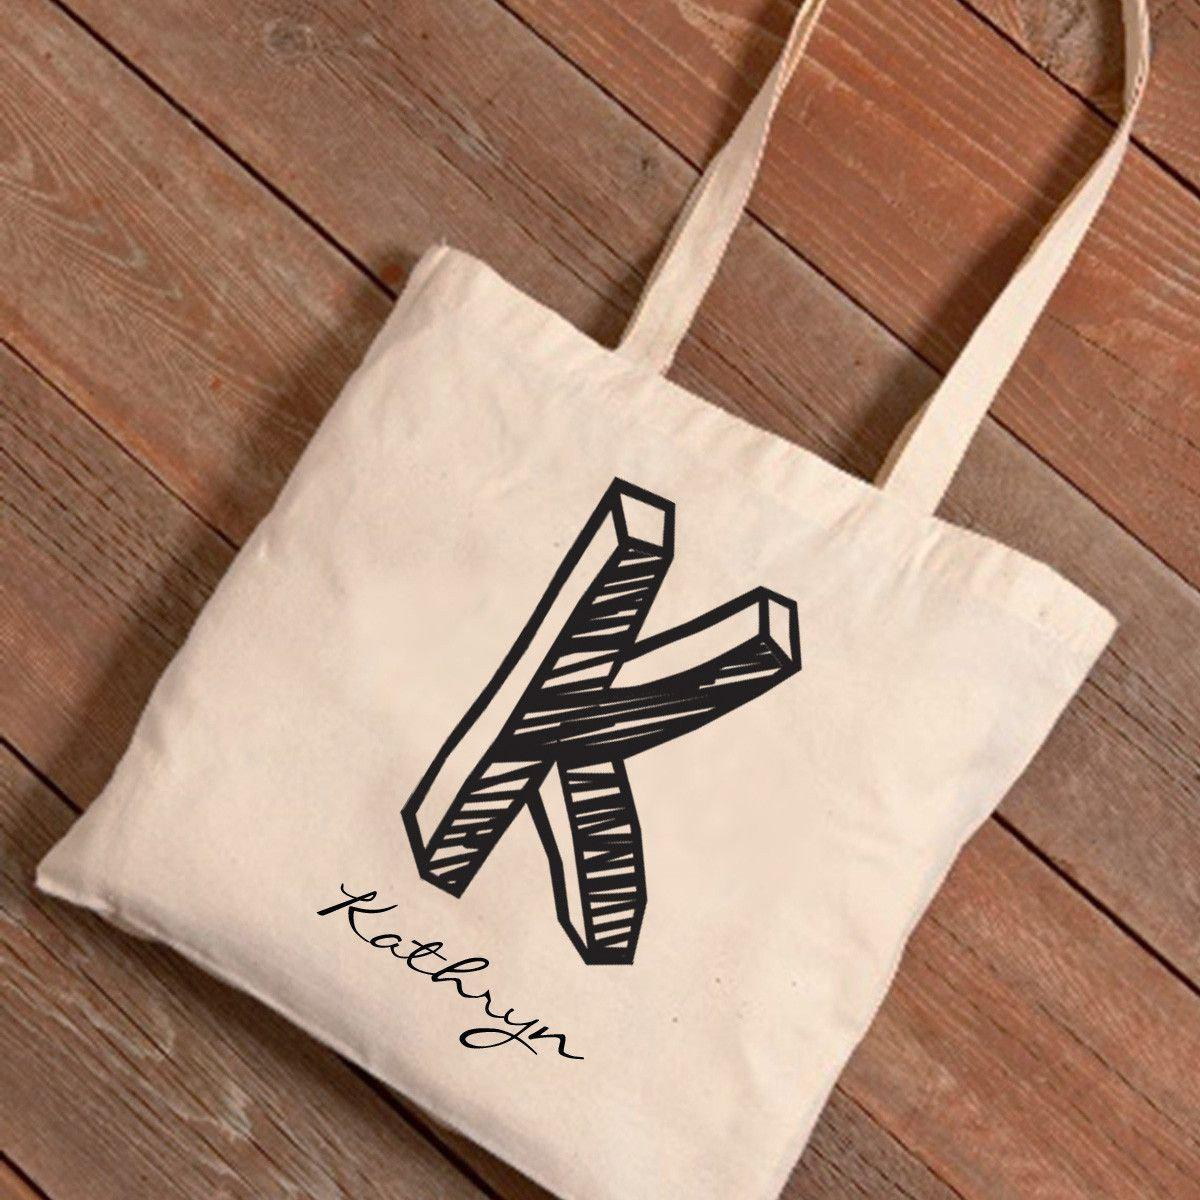 Personalized-Monogrammed-Canvas-Tote-Bag